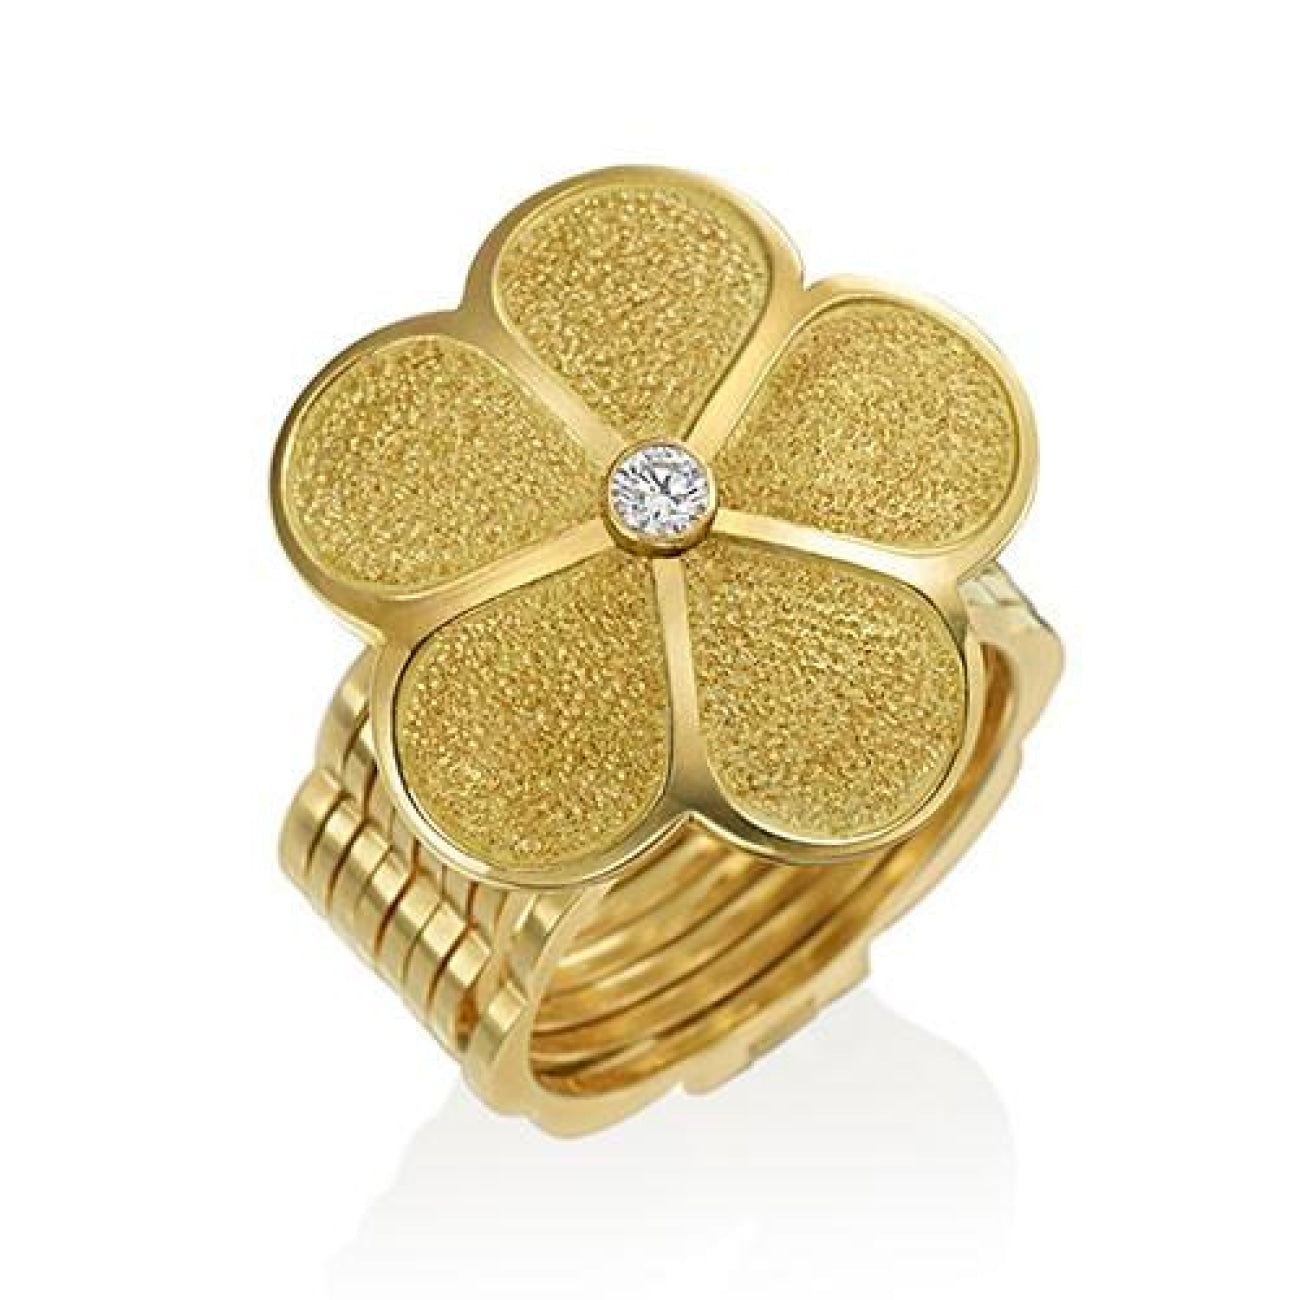 Gumuchian Jewelry - GUMUCHIAN G. BOUTIQUE 18K YELLOW GOLD DIAMOND DAISY TRANSFORMING RING TO BRACELET | Manfredi Jewels